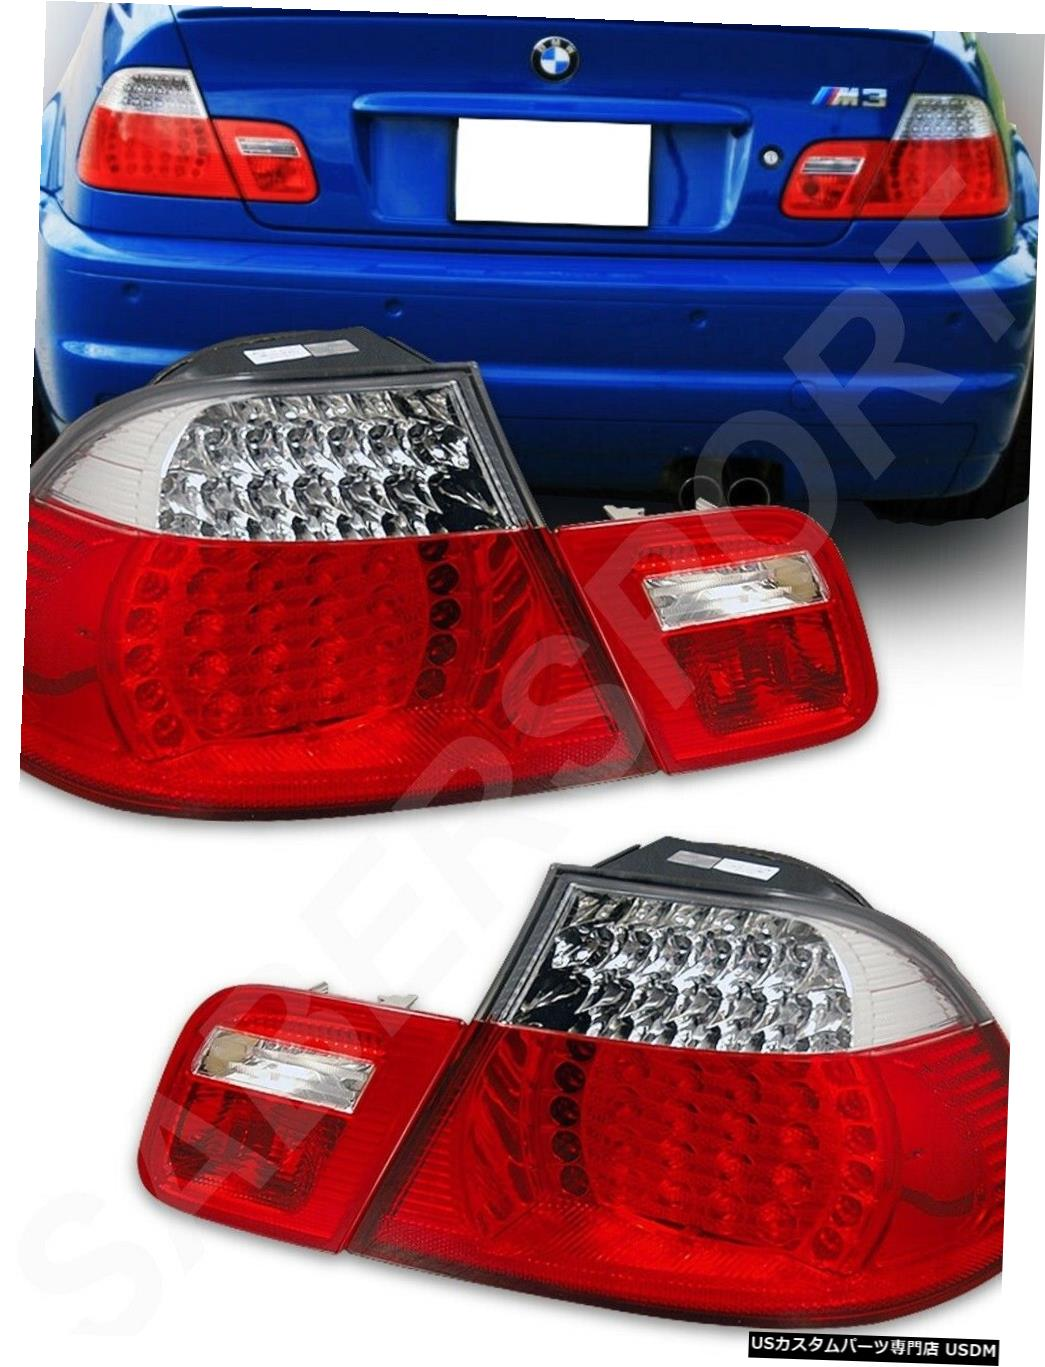 Tail light 2000-2003 BMW E46 3シリーズ2drクーペ用レッドクリアLEDテールライト4個セット Set of Red Clear LED Taillights 4pcs for 2000-2003 BMW E46 3-Series 2dr Coupe